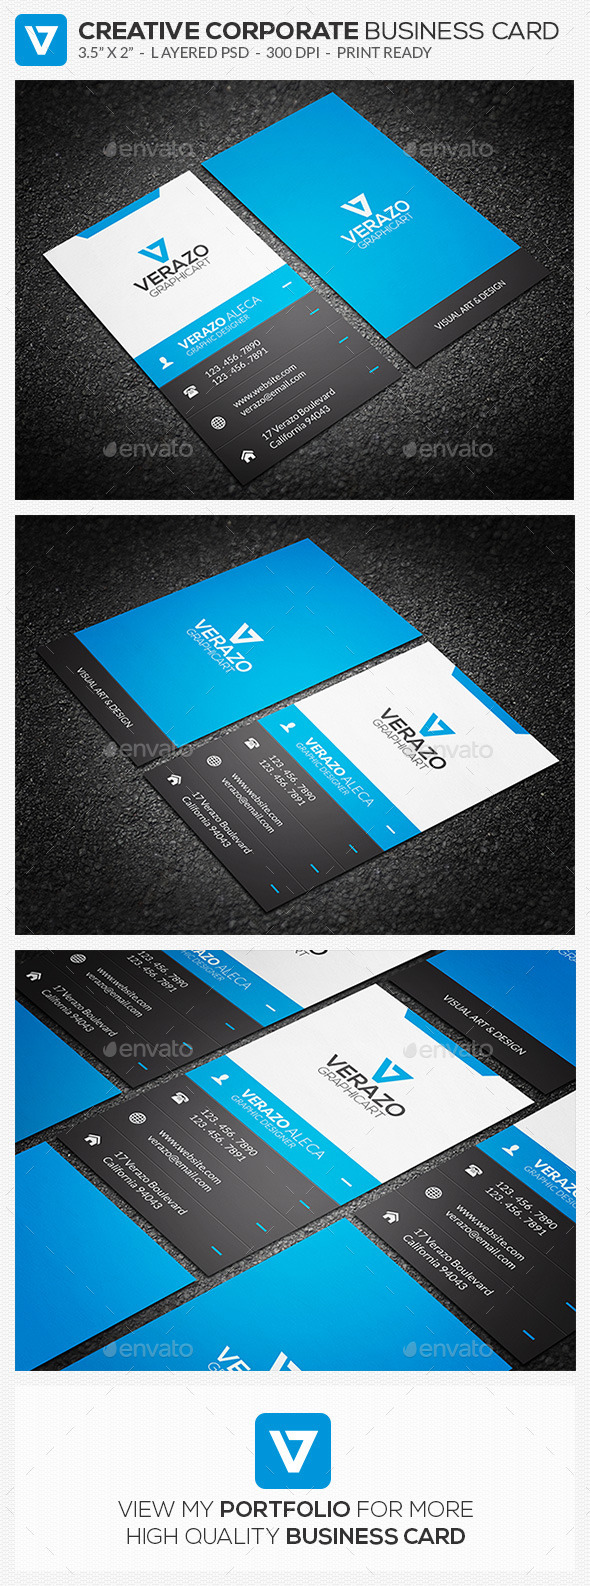 Creative corporate business card 61 by verazo graphicriver creative corporate business card 61 creative business cards magicingreecefo Choice Image